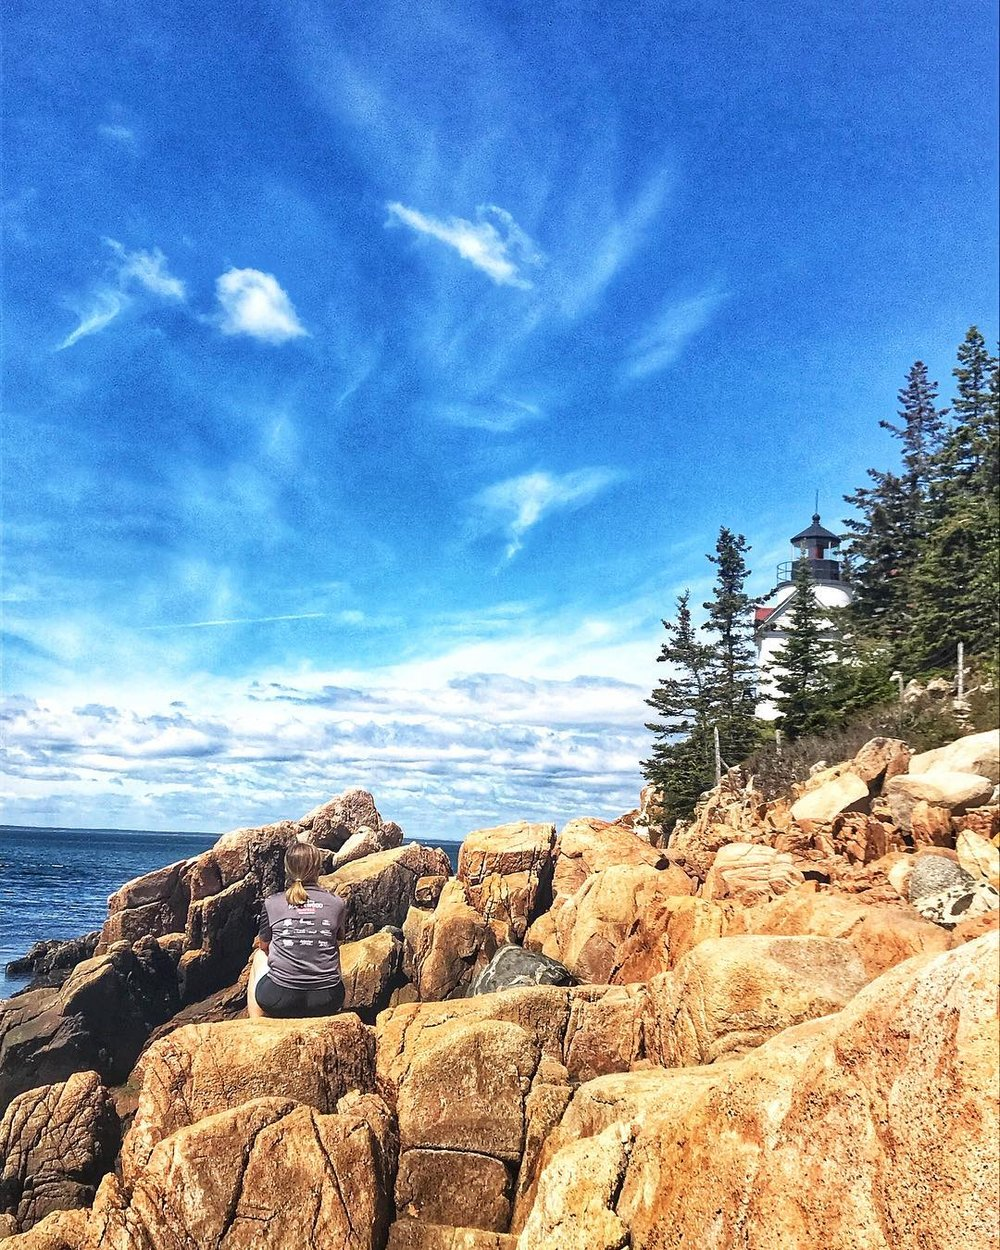 Bass Harbor Lighthouse in the daytime, after a challenging bike ride around that part of the Island